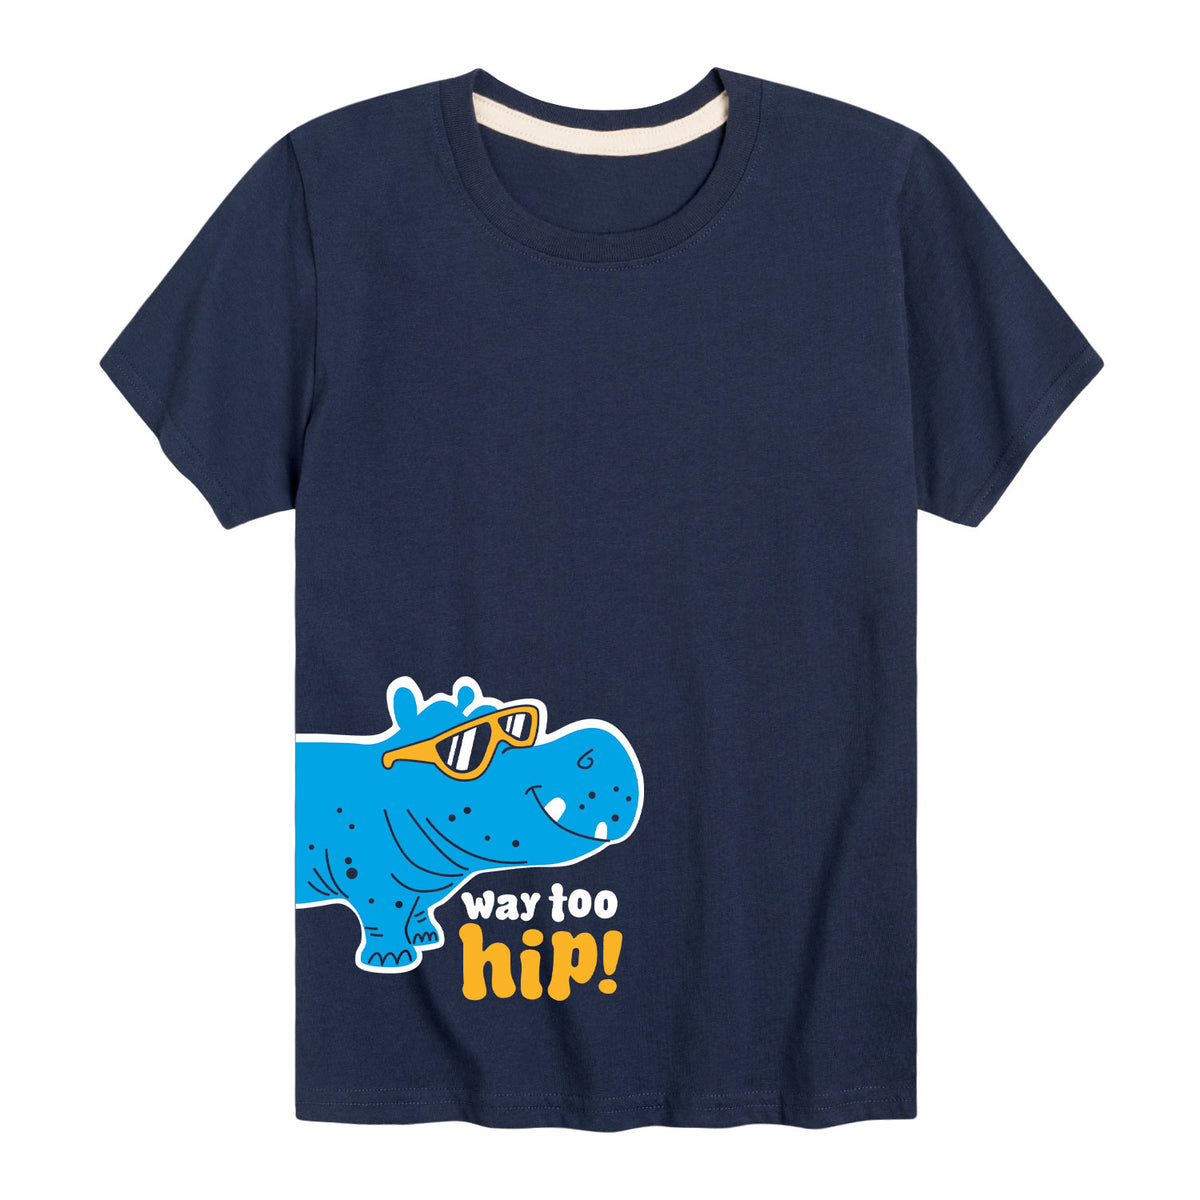 Way Too Hip - Youth & Toddler Short Sleeve T-Shirt